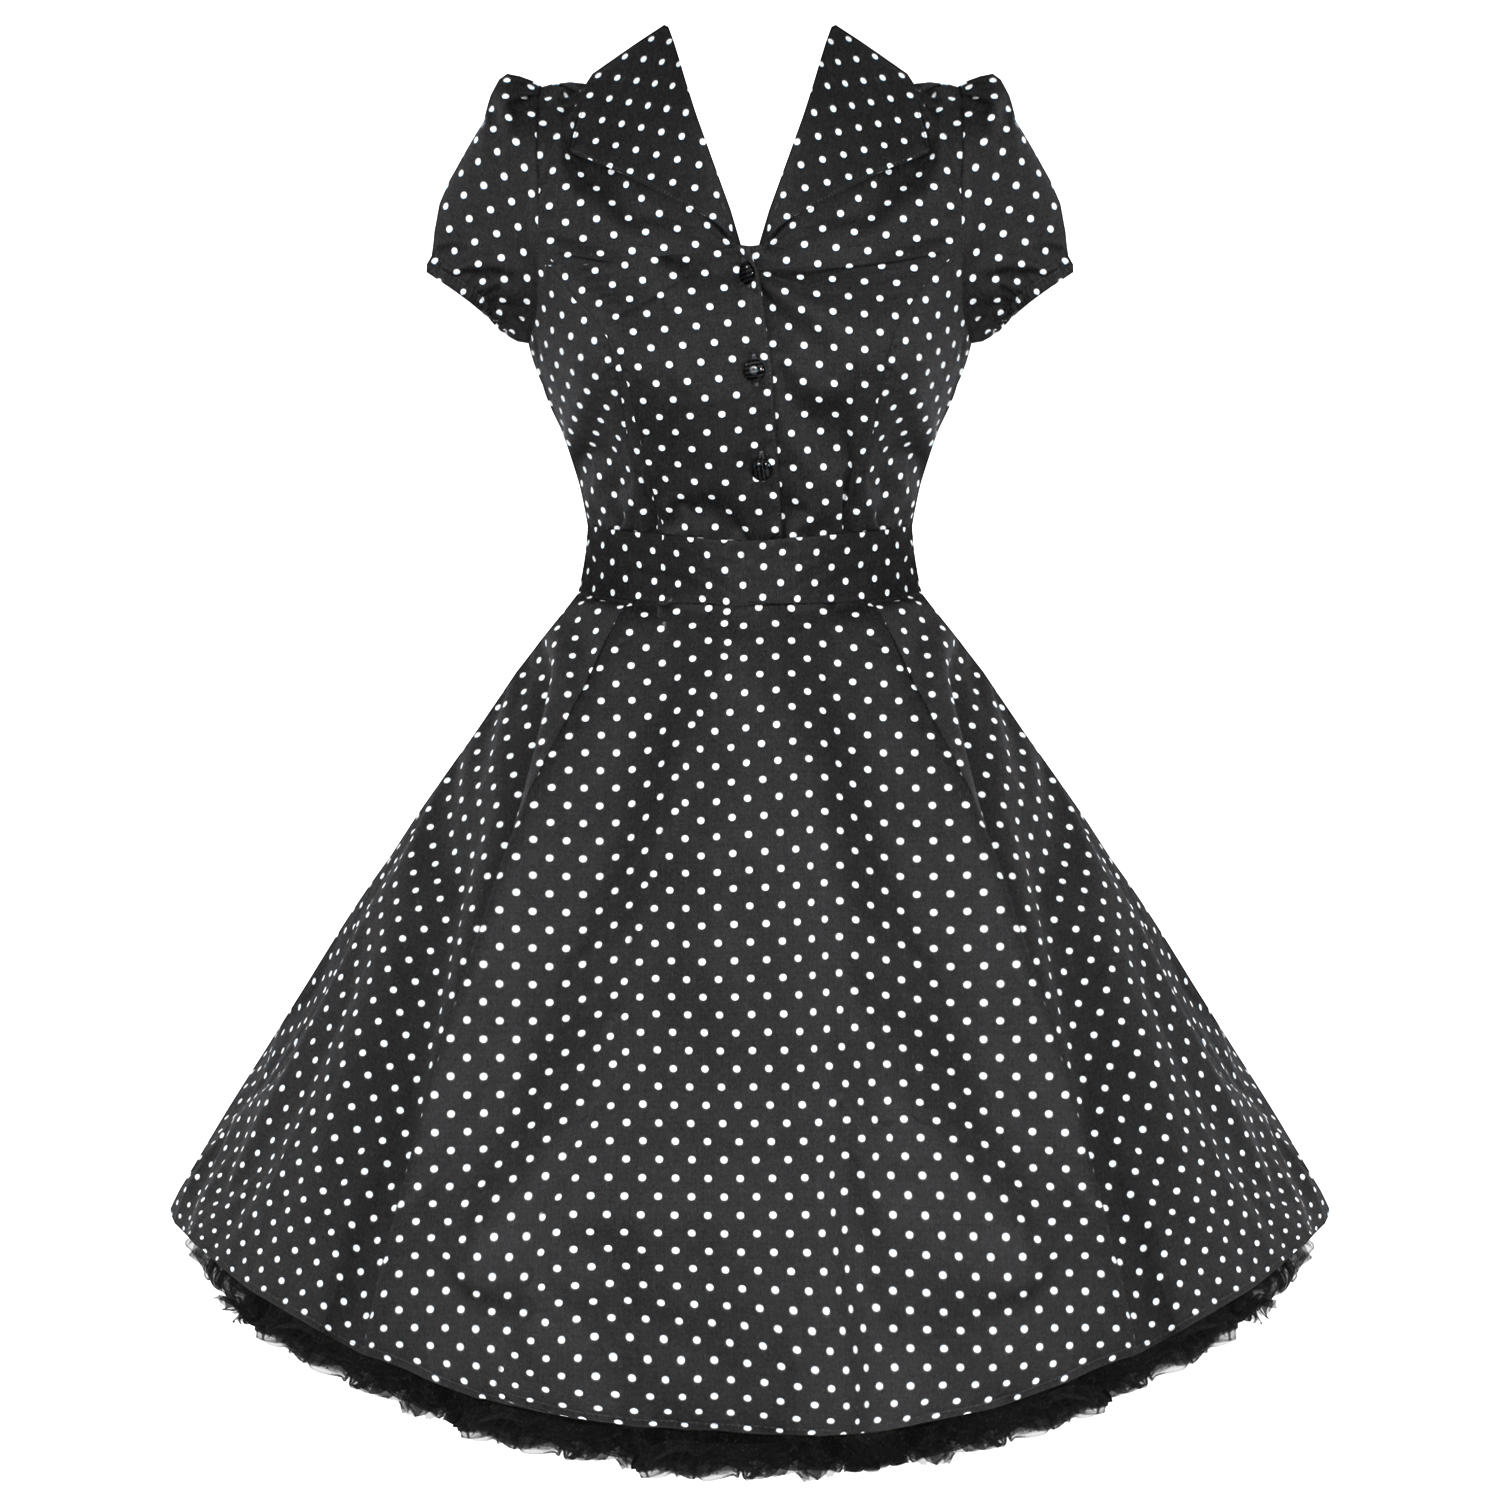 kleid damen rockabilly 50er jahre polka punkte retro kleid. Black Bedroom Furniture Sets. Home Design Ideas